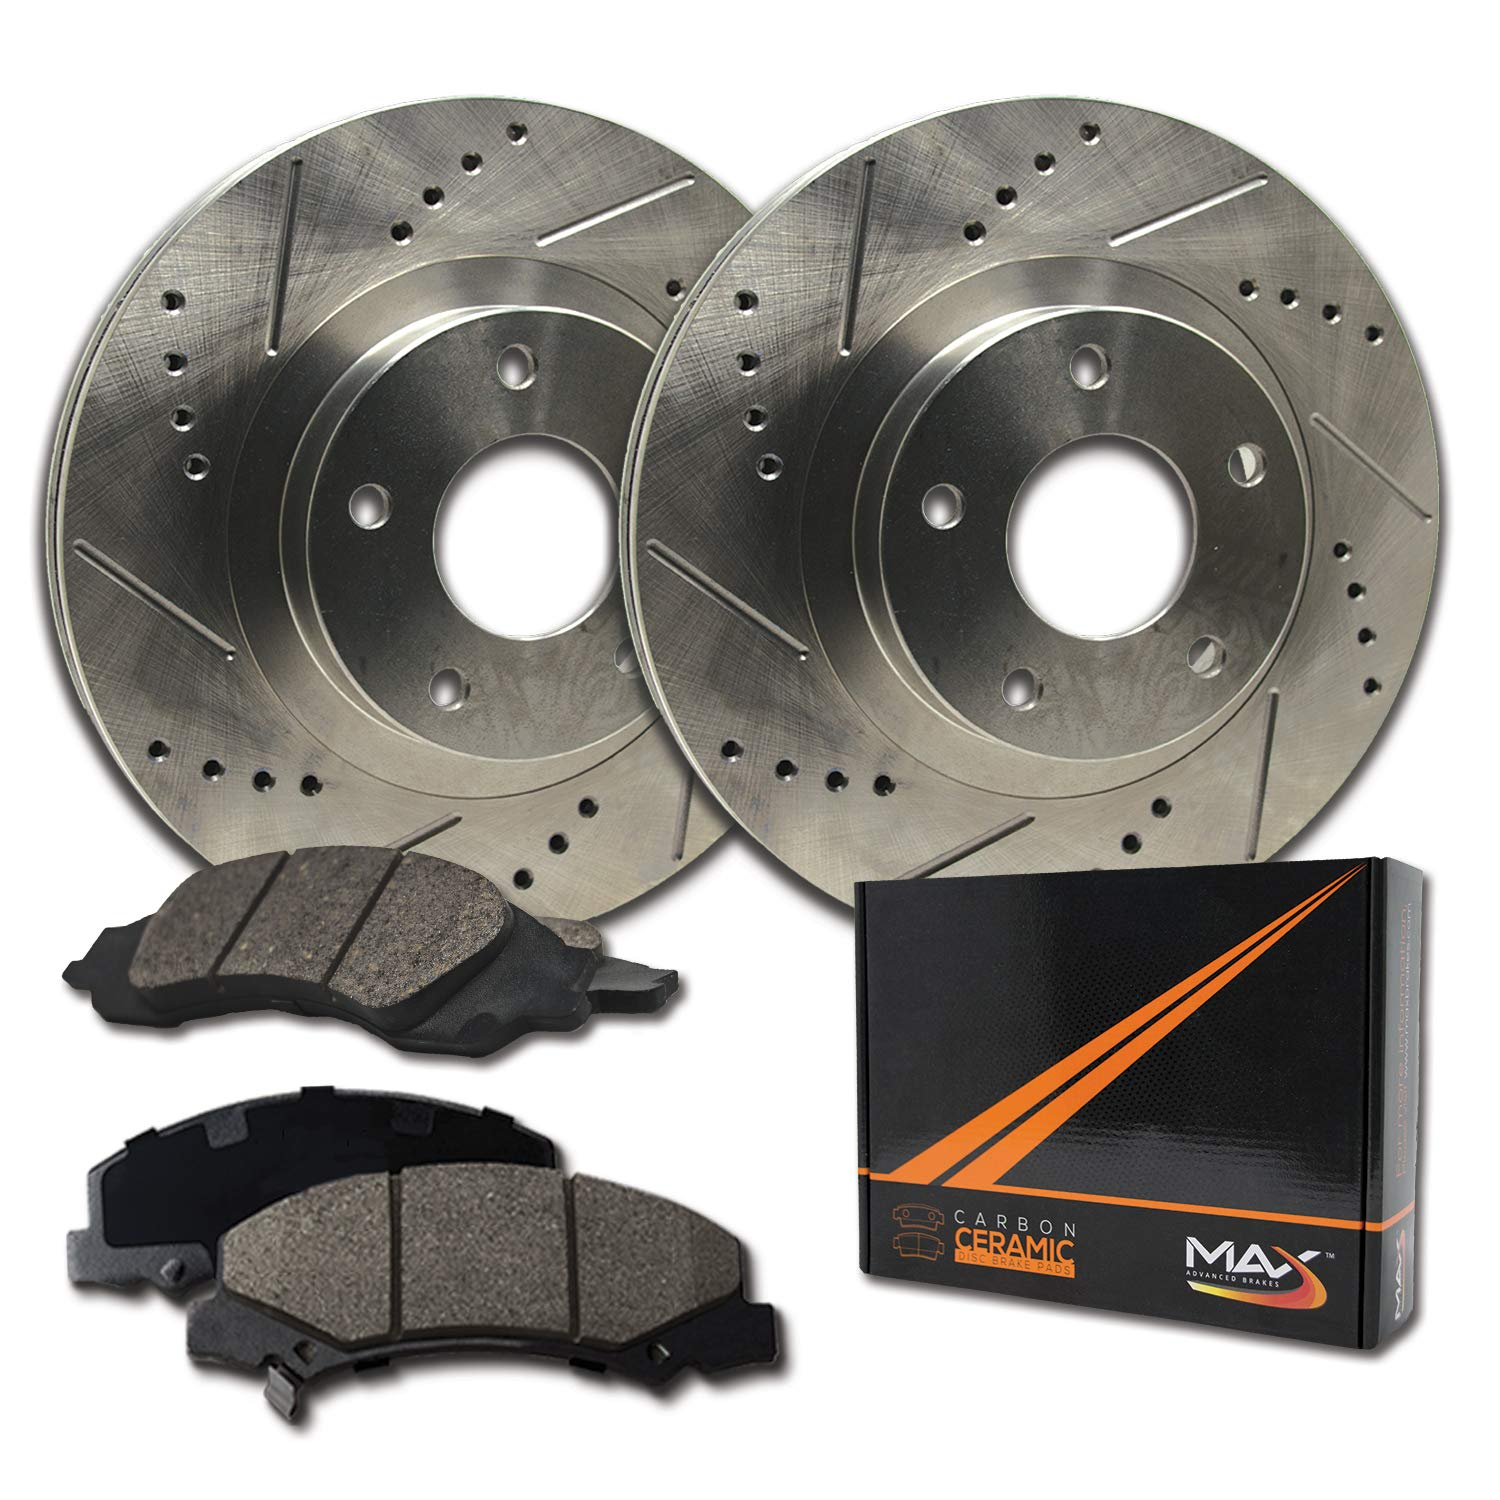 Max Brakes Front Performance Brake Kit [ Premium Slotted Drilled Rotors + Ceramic Pads ] KT025531 Fits: Jeep 1990-1999 Cherokee XJ & Wrangler 1993-1998 Grand Cherokee 1997-1999 TJ by Max Advanced Brakes